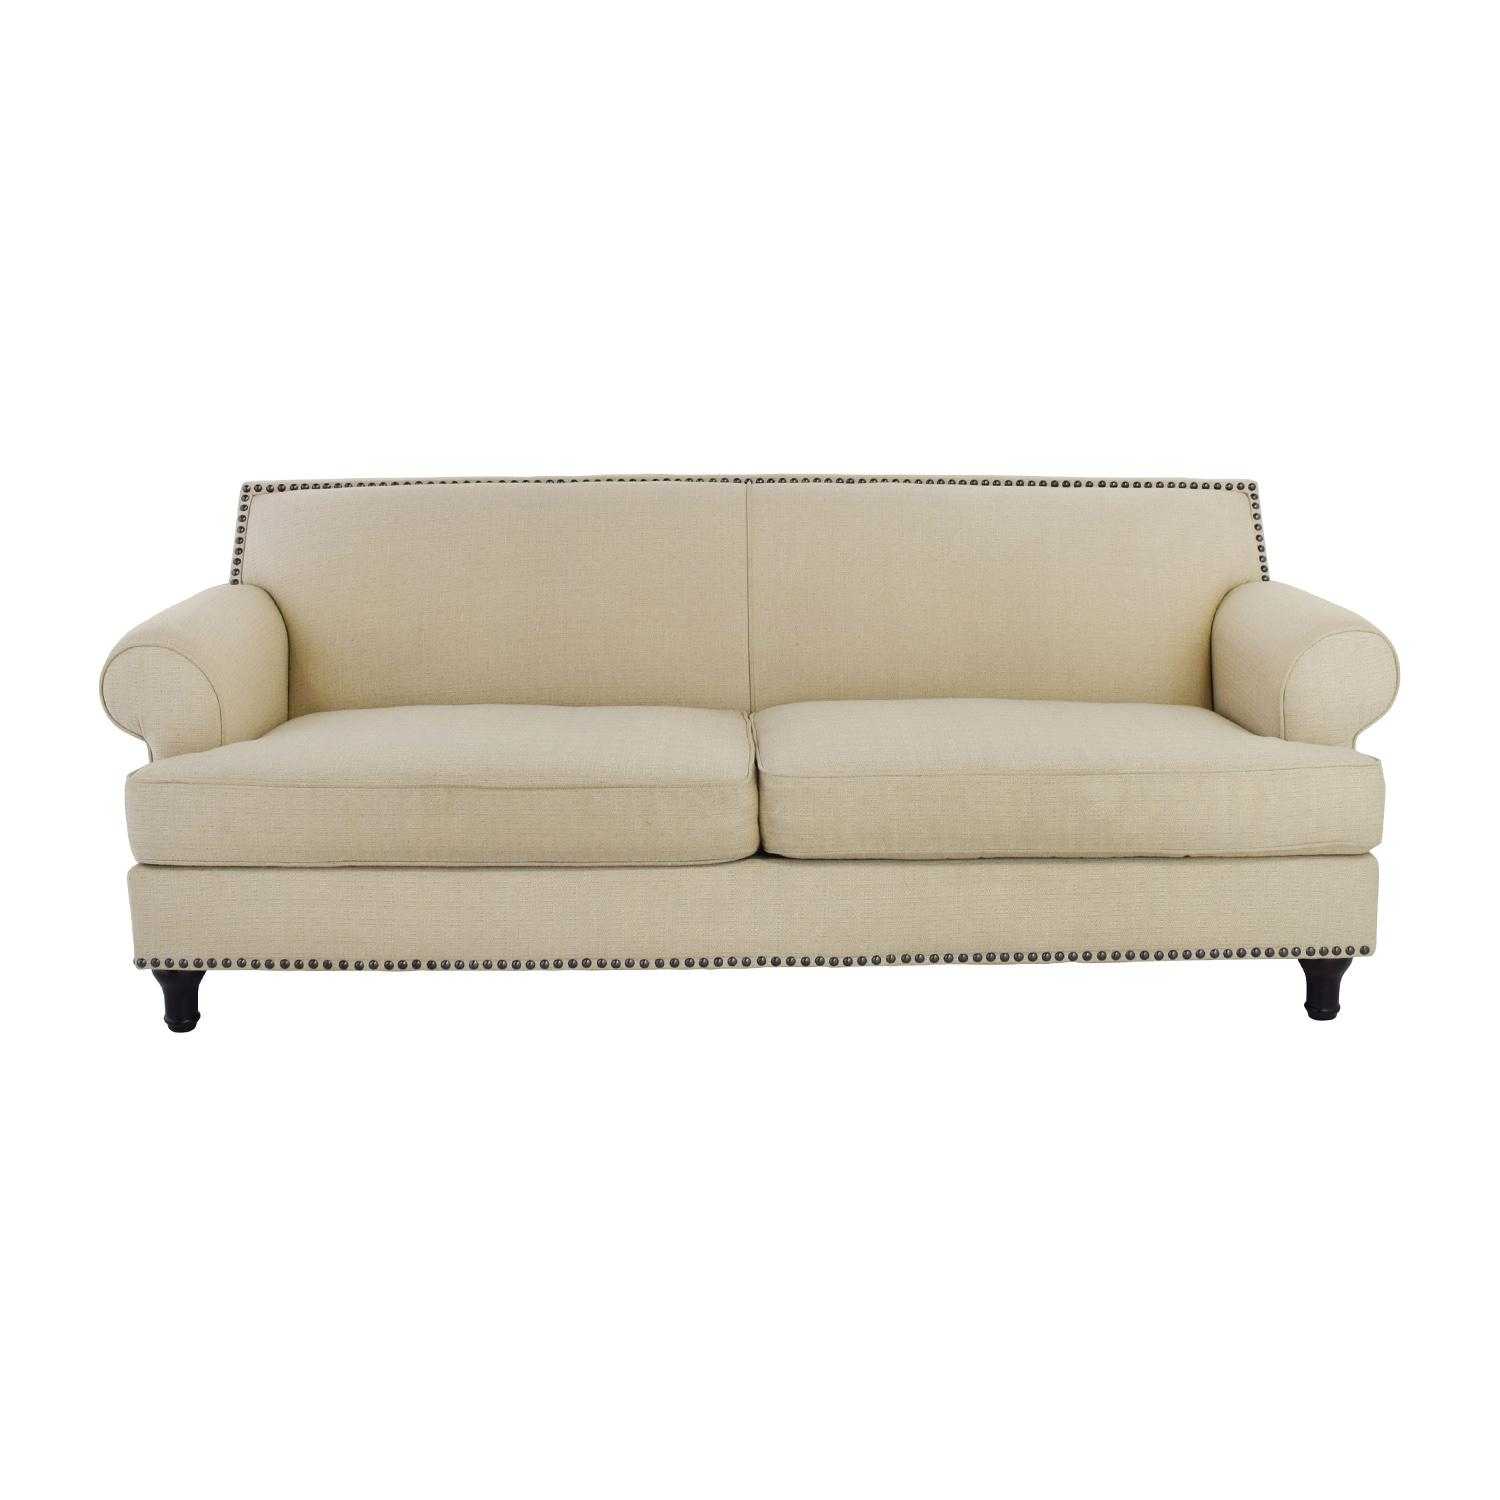 32% Off - Pier 1 Imports Pier 1 Imports Putty Tan Tufted Loveseat throughout Pier 1 Sofa Beds